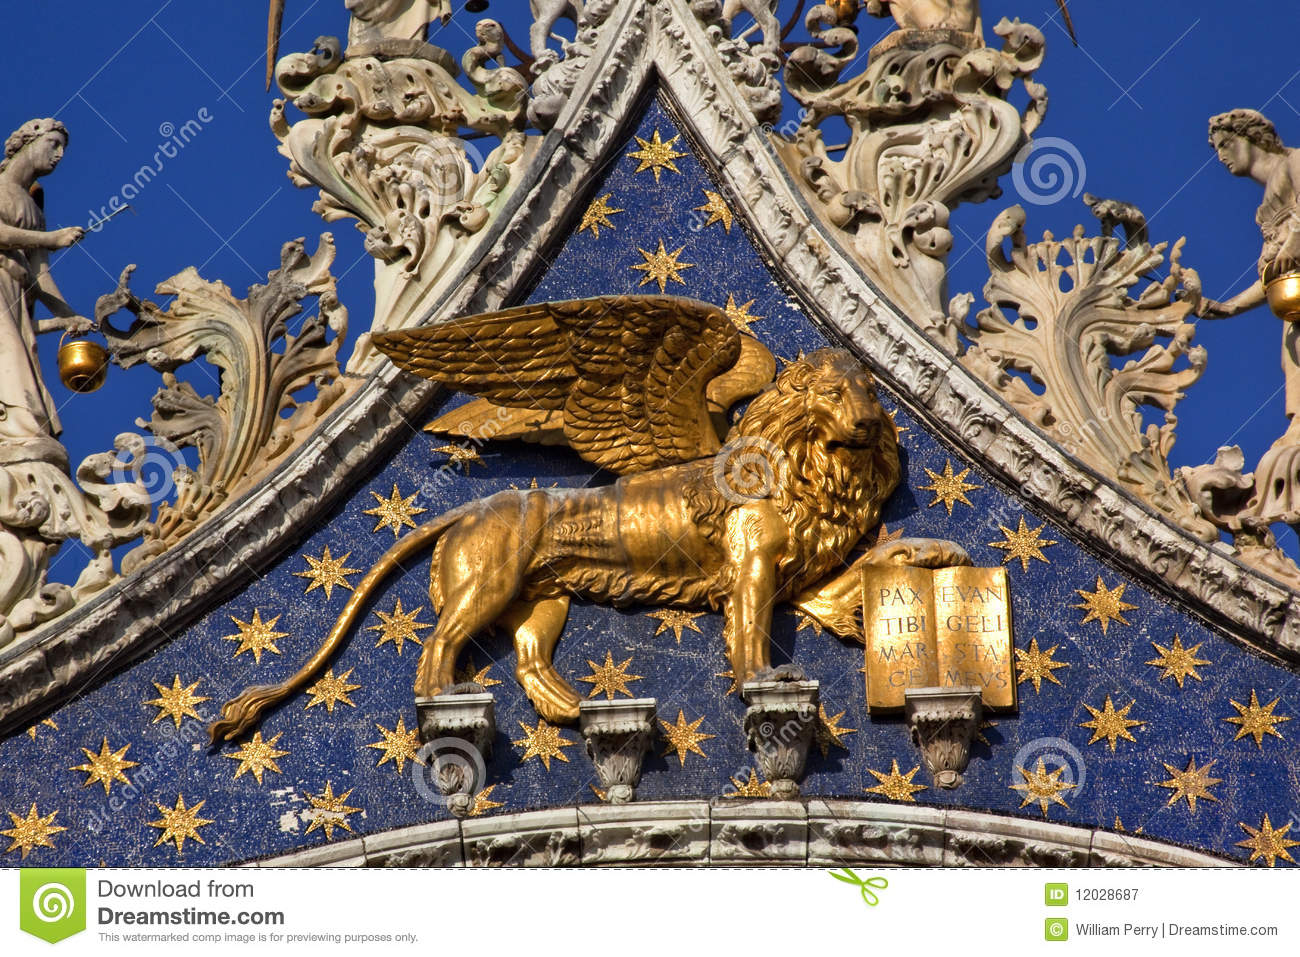 3d Animation Animals Wallpaper Saint Marks Basilica Golden Lion Venice Royalty Free Stock